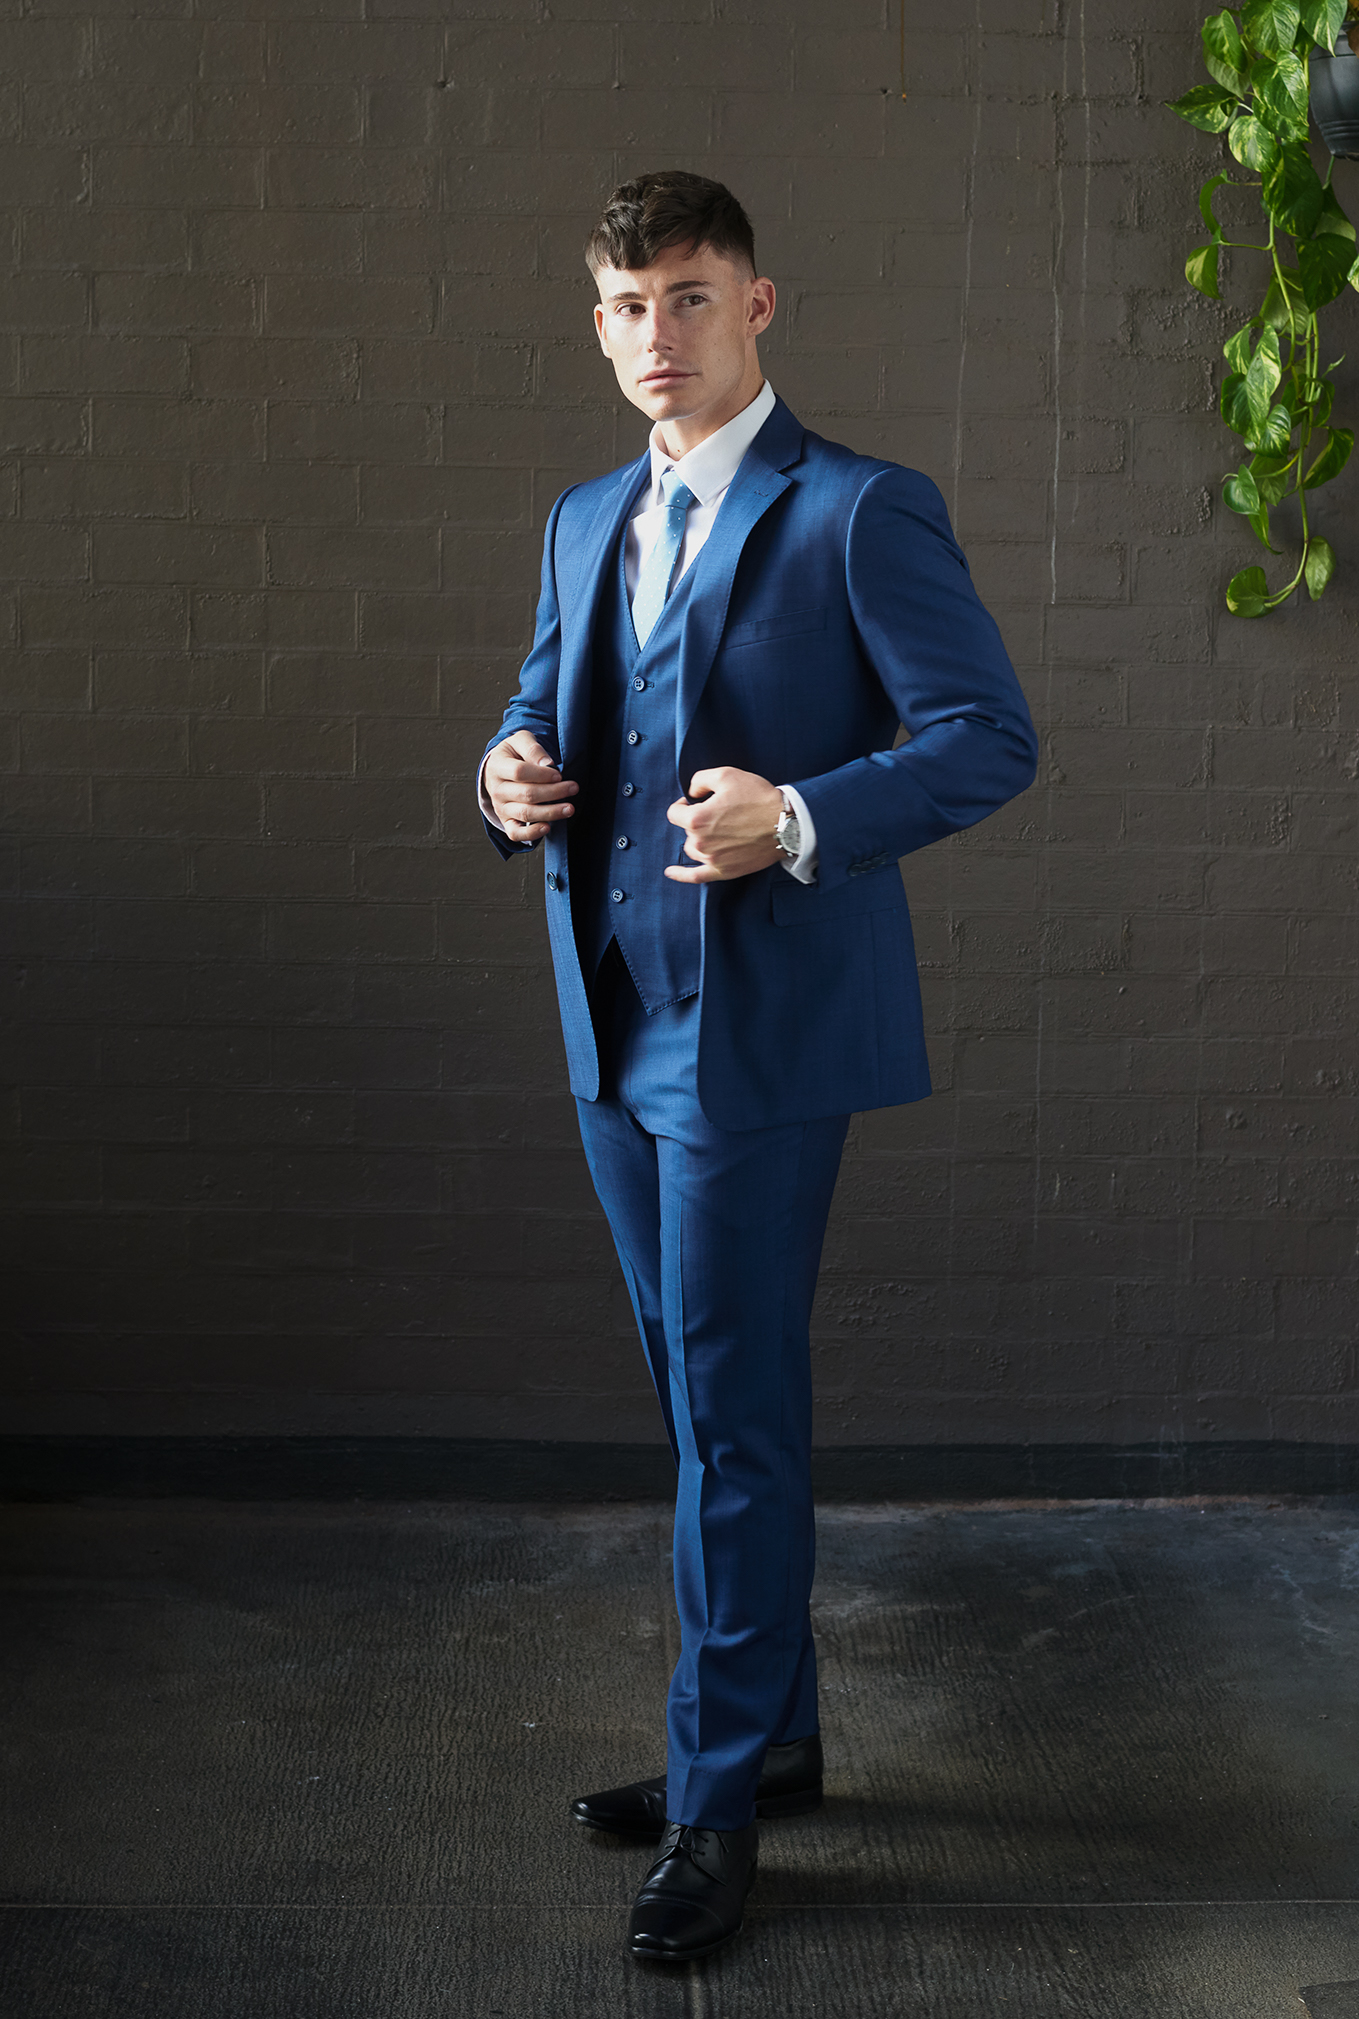 The Marine blue suit for hire or sale